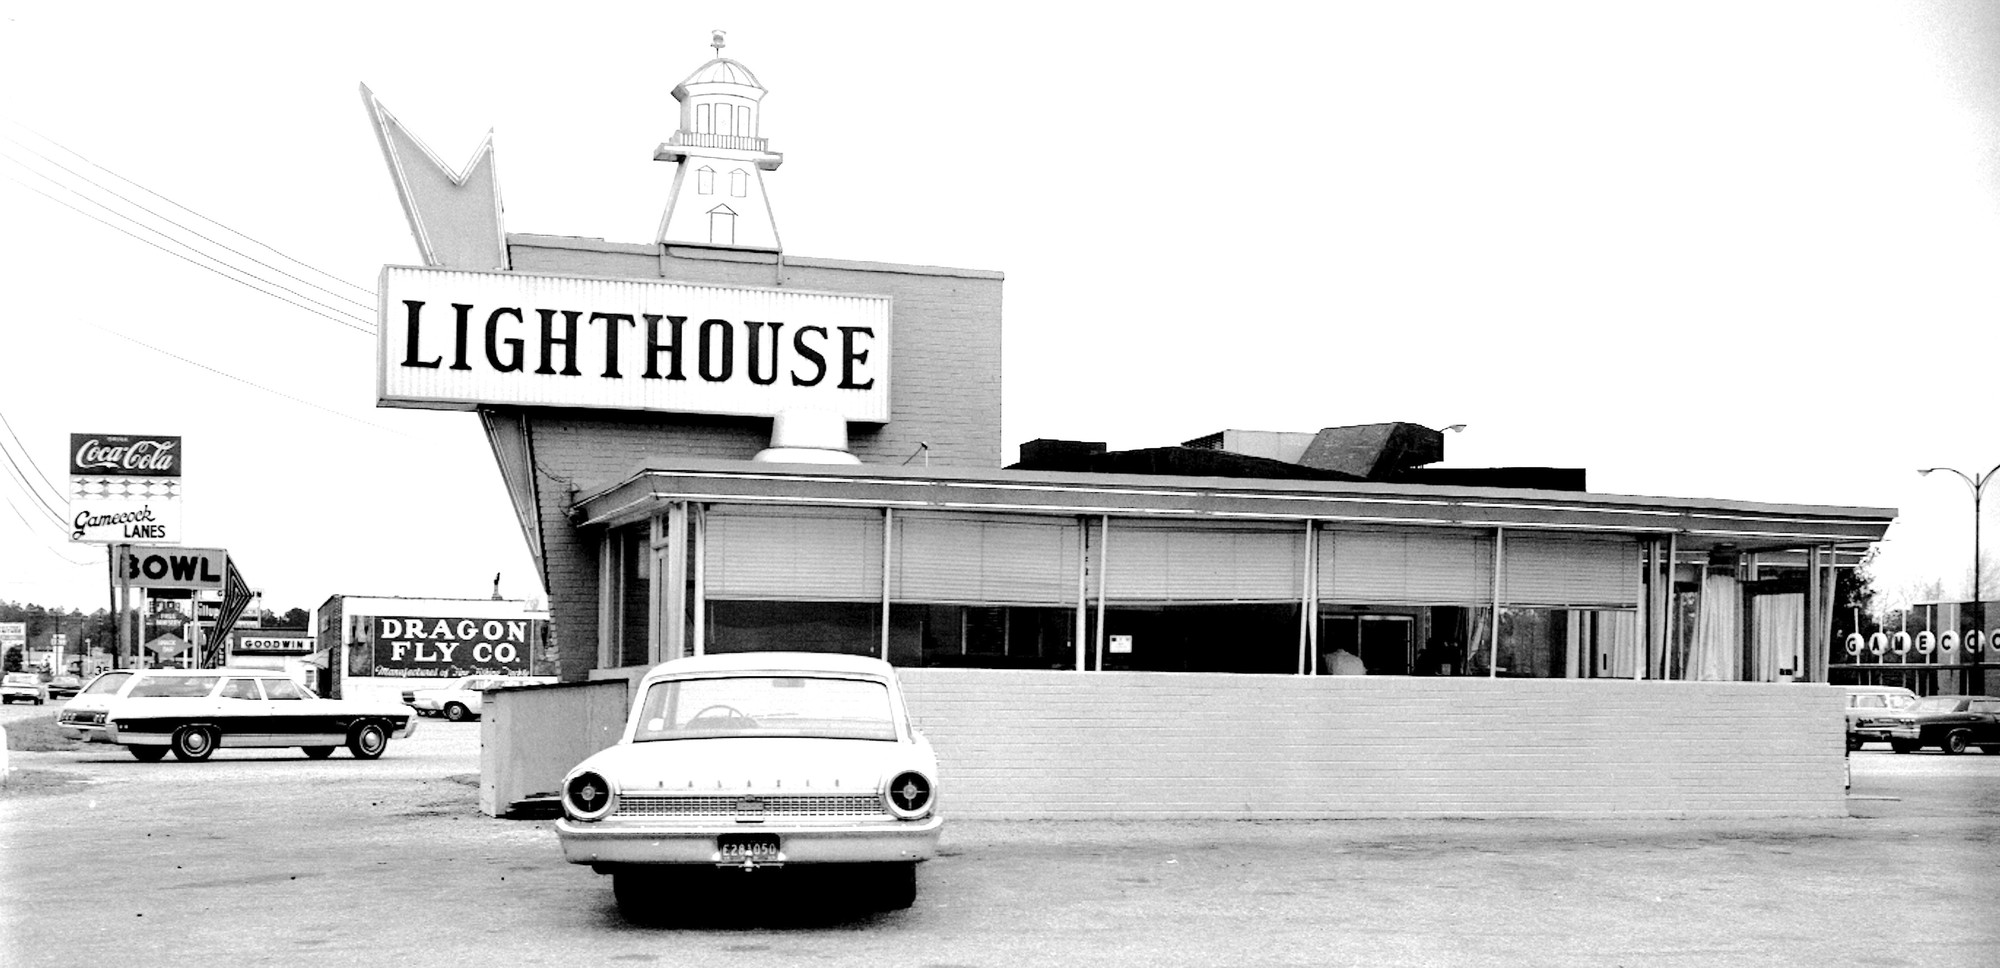 The Lighthouse Restaurant was a favorite dining destination on Broad Street near the present Gamecock Lanes bowling alley.